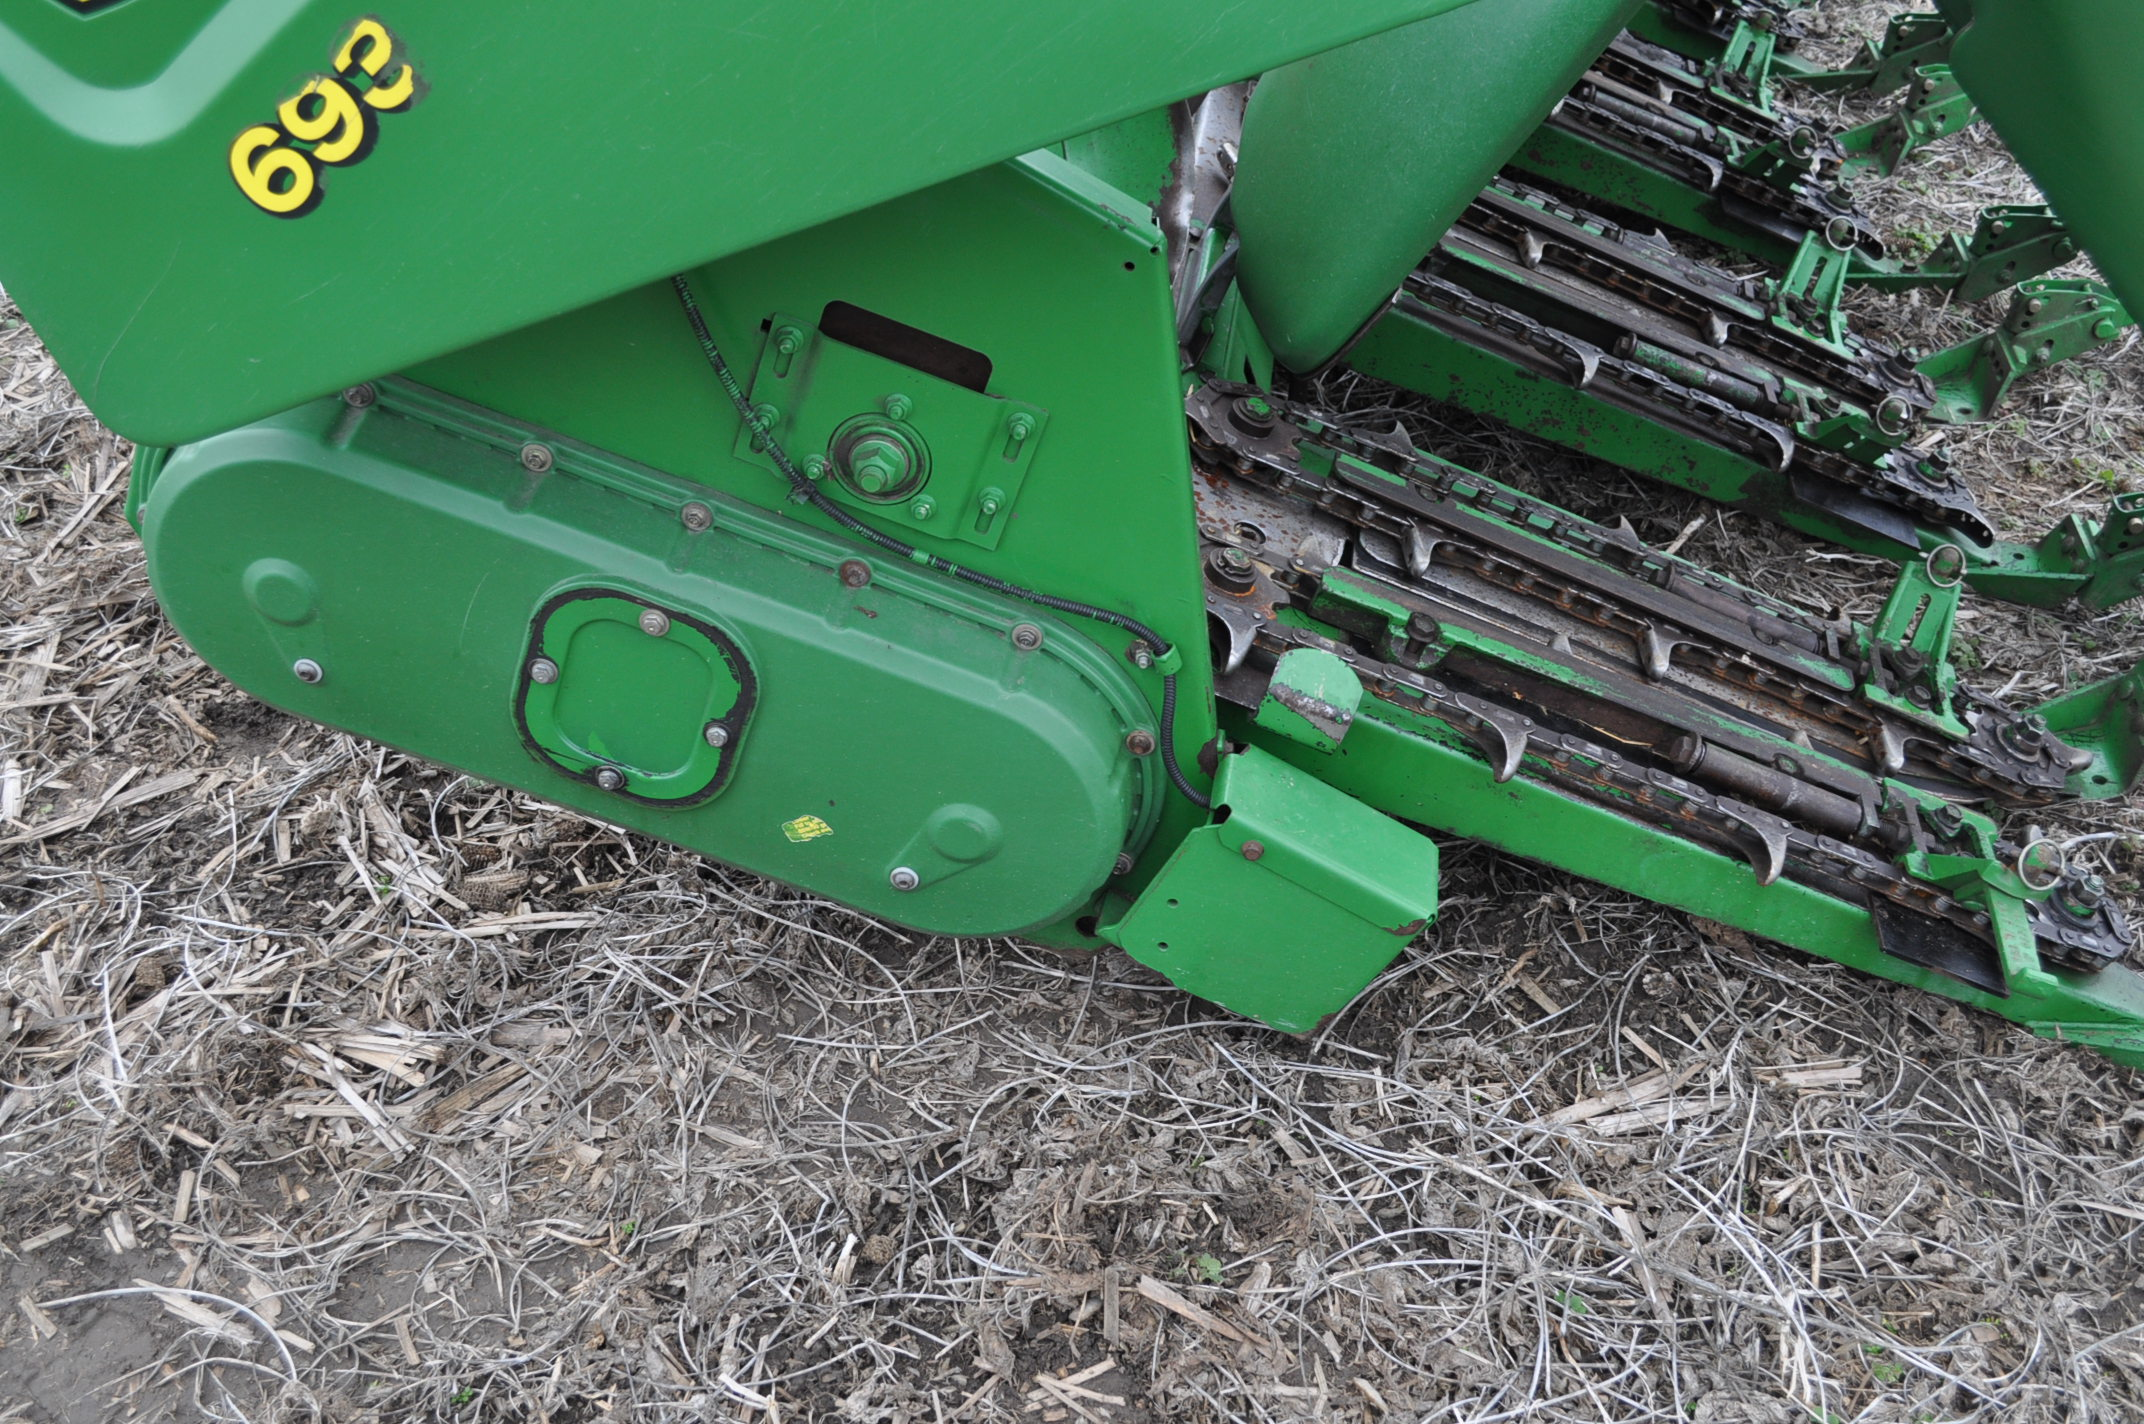 John Deere 693 corn head, poly, fluted rolls, hyd deck plates, pto shafts, SN 710815 - Image 14 of 14